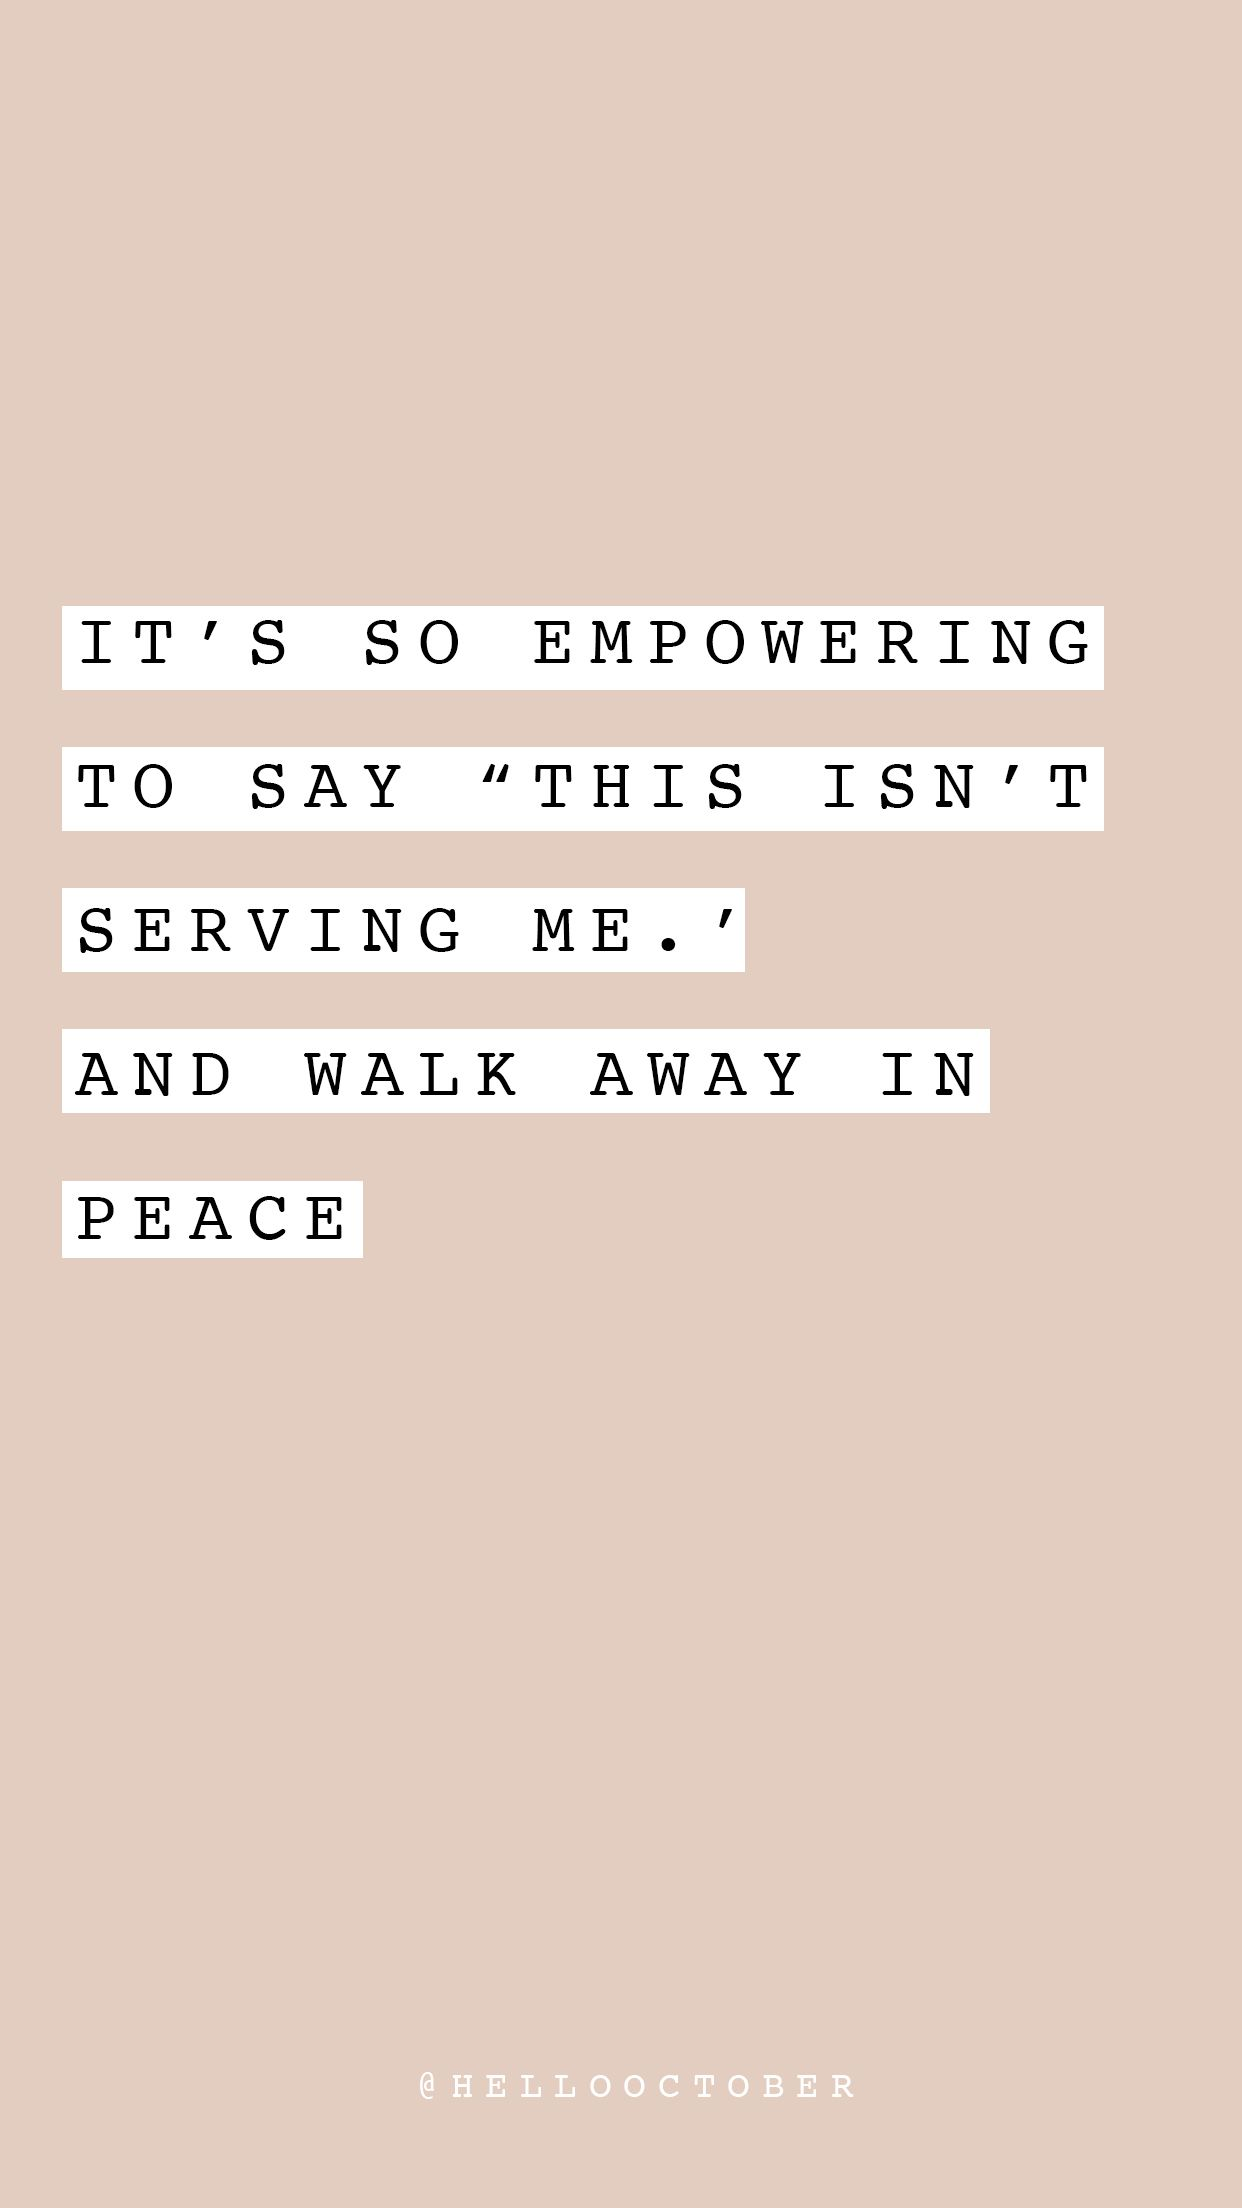 Instagram Hellooctober Empowerment Quotes Words Quotes Words